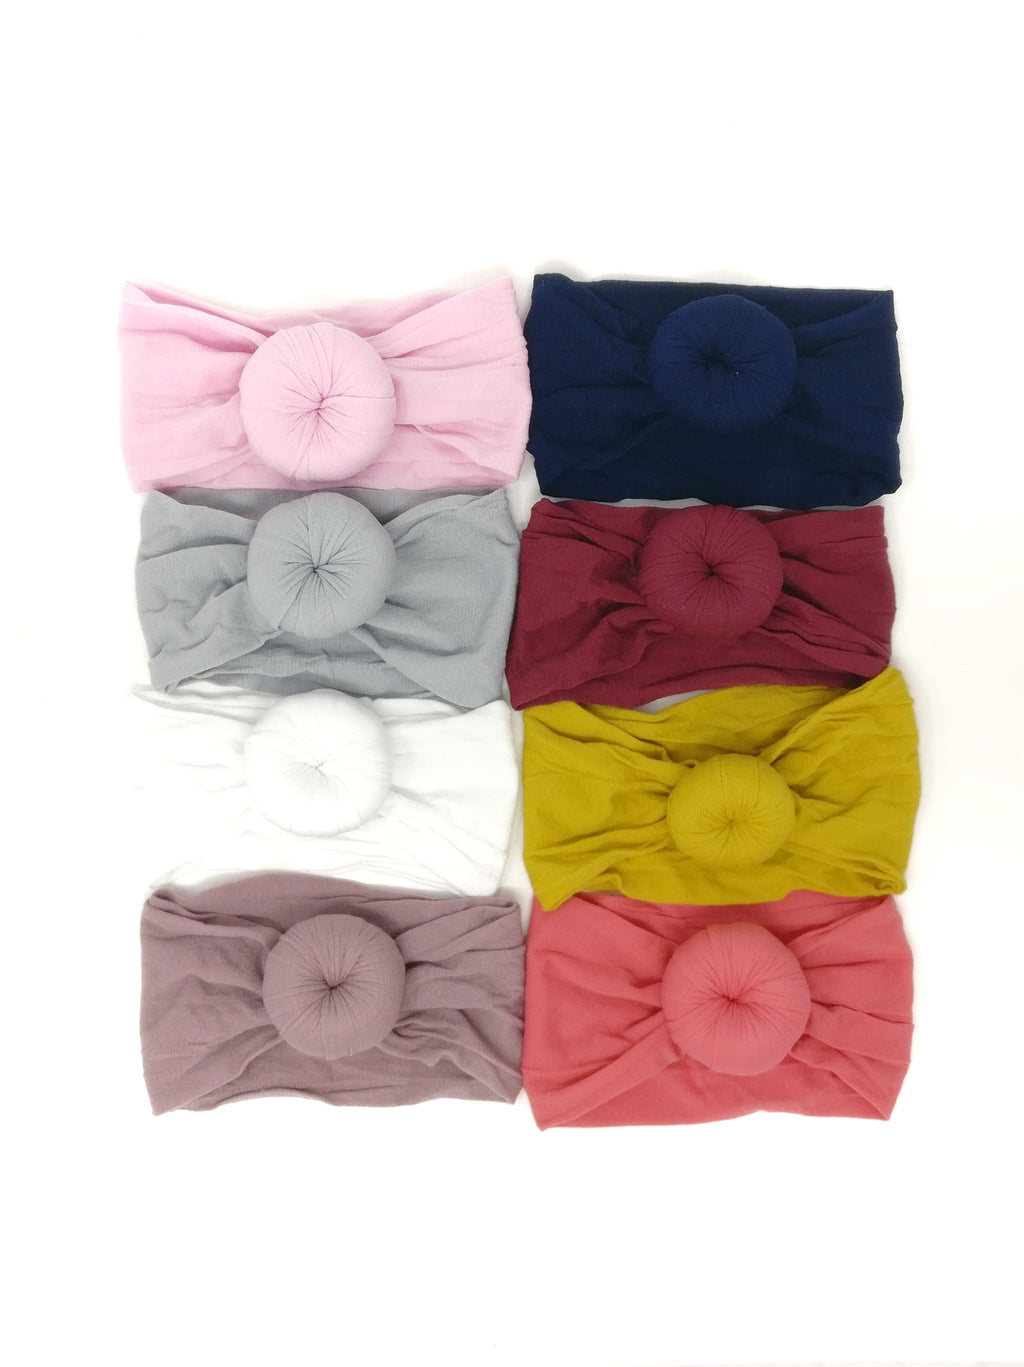 NYLON ROUND KNOT HEADBANDS